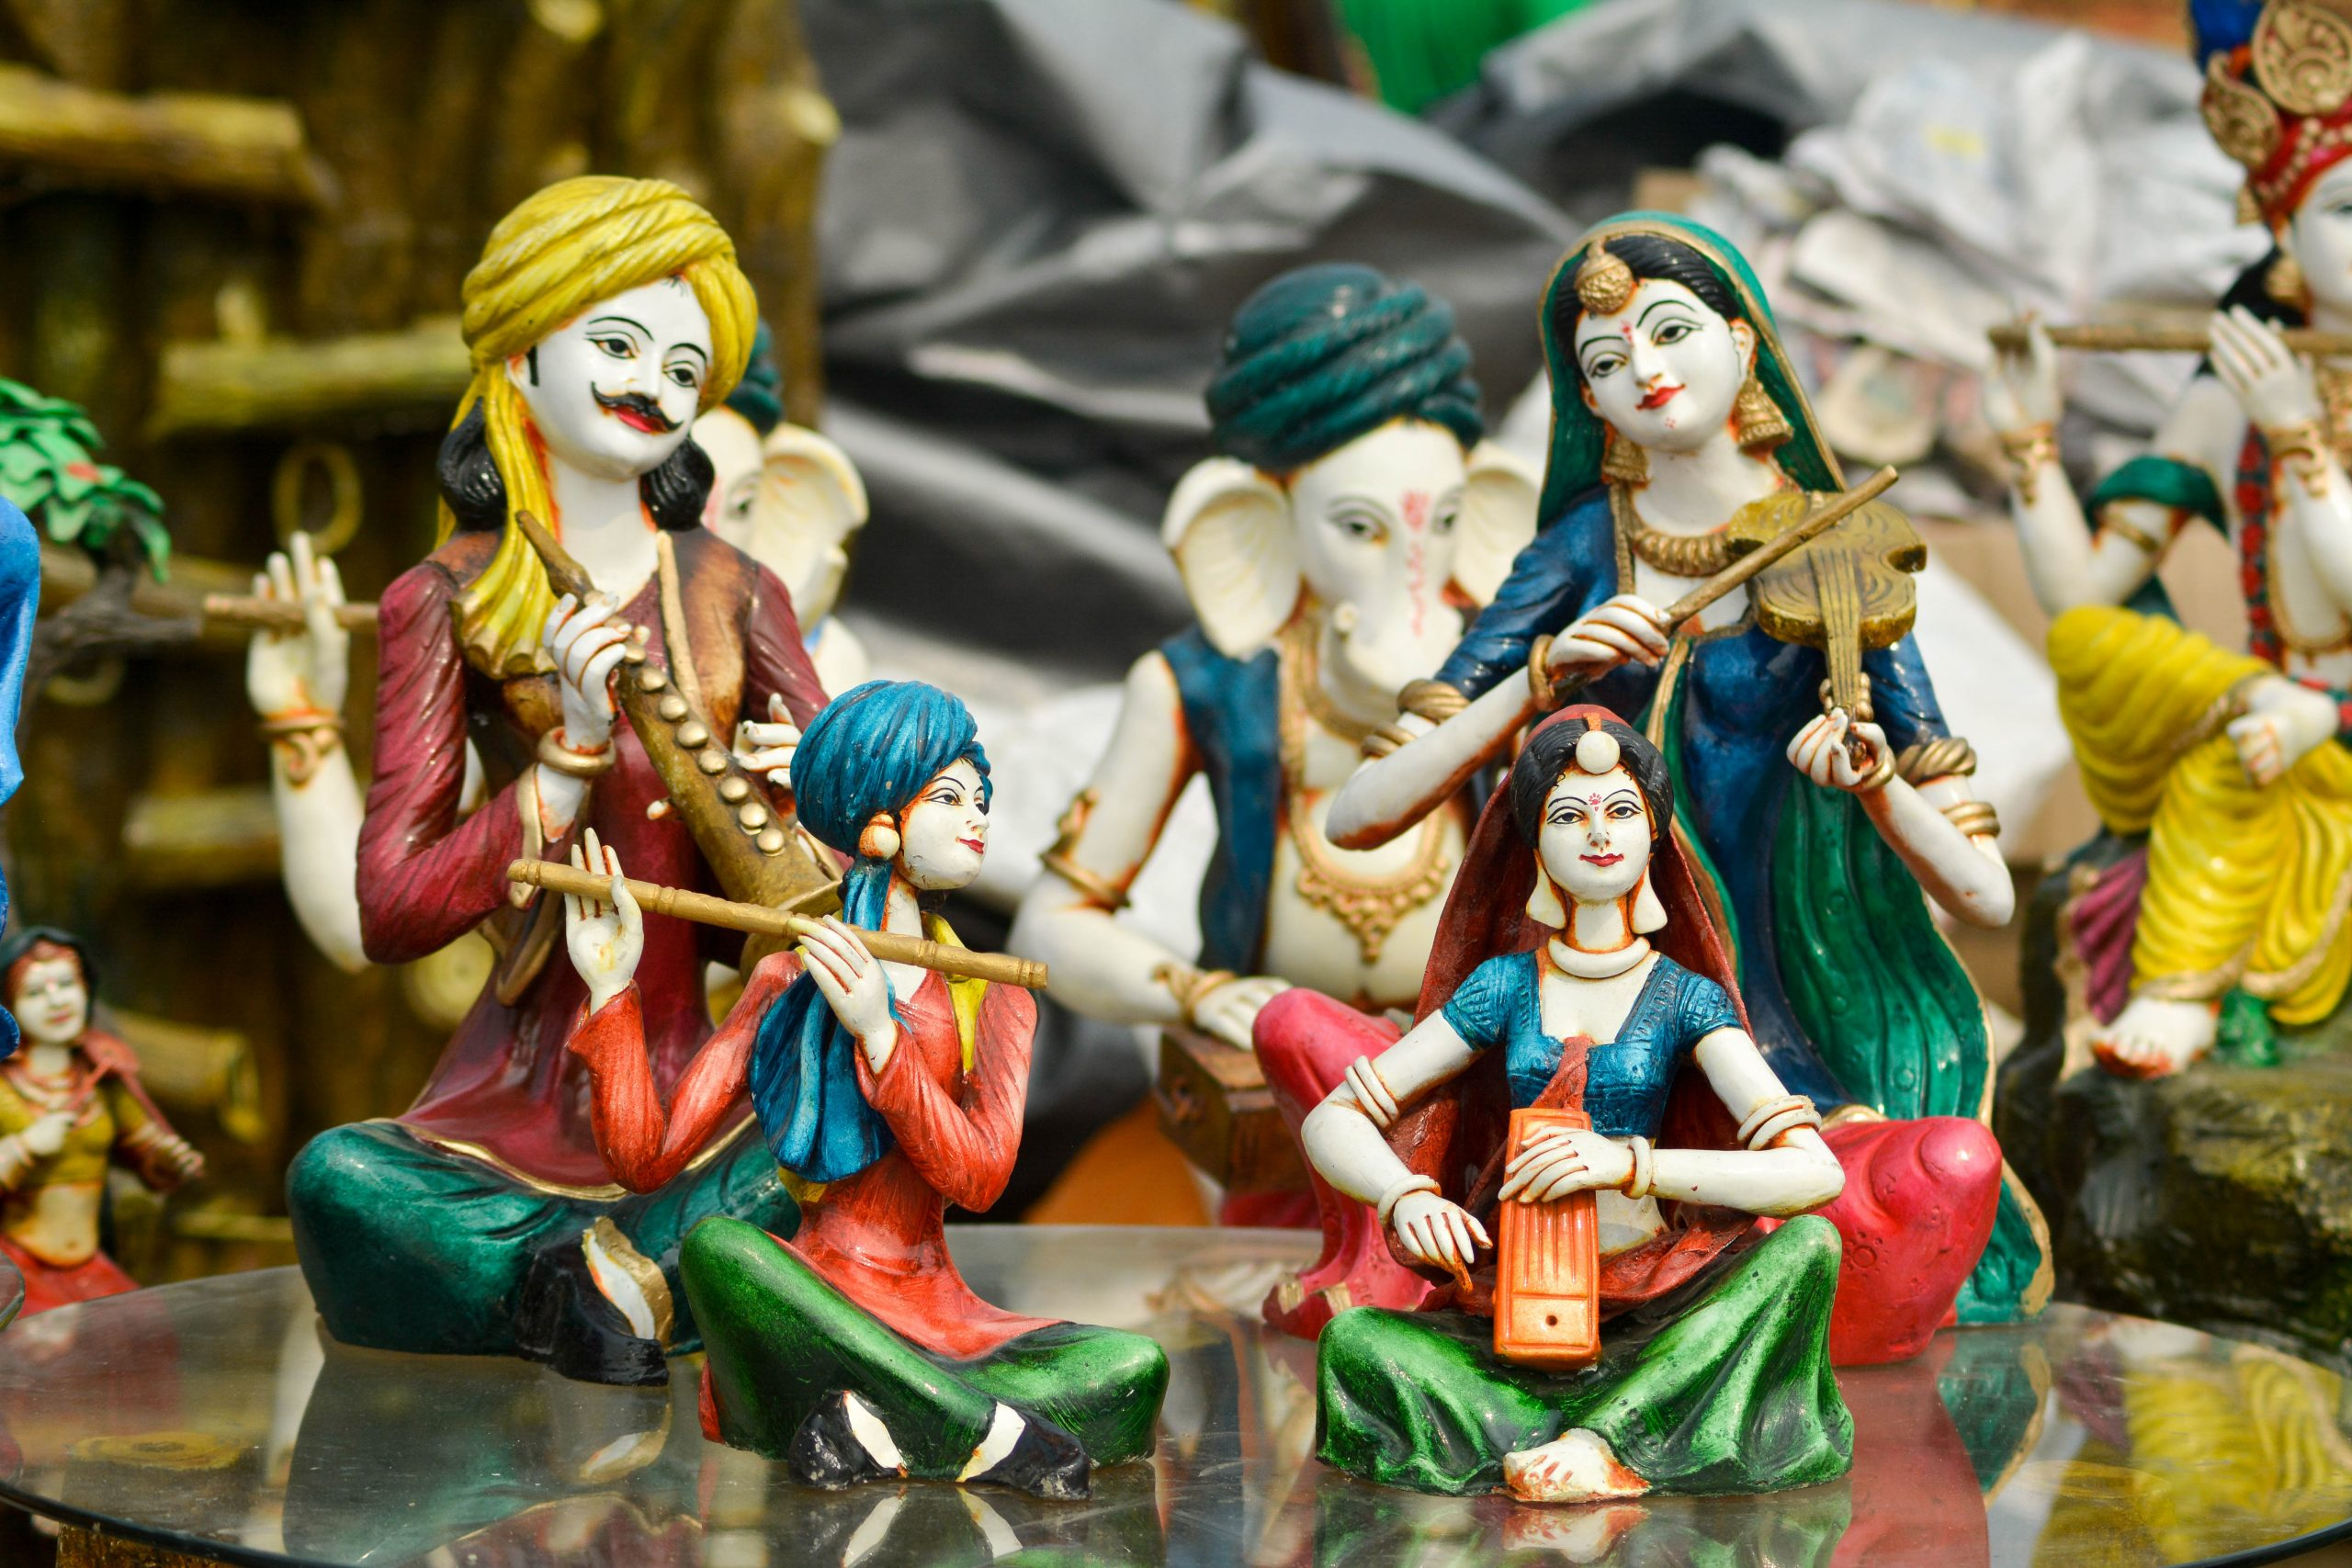 Handmade statues of Indian people